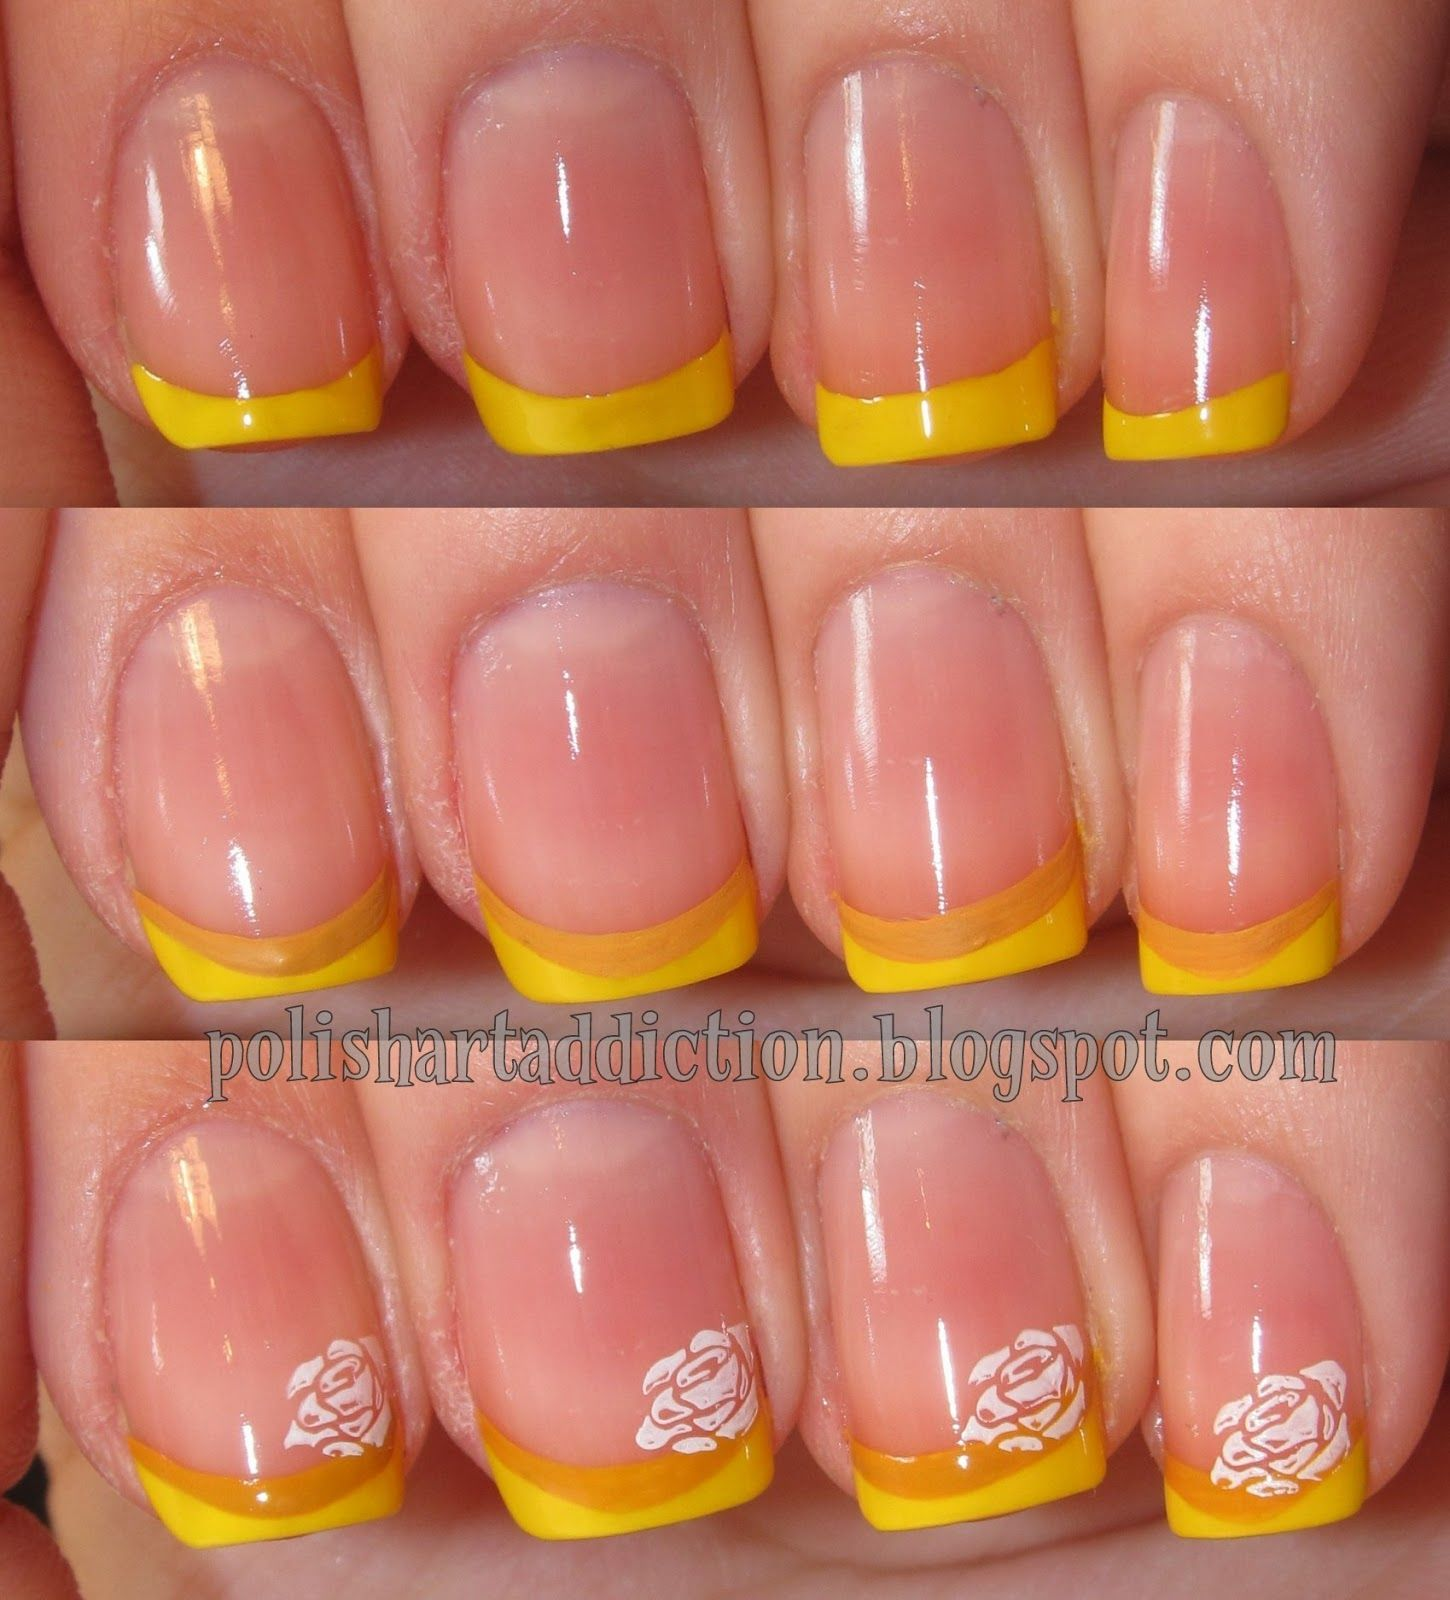 Beauty and the beast nails | Nails | Pinterest